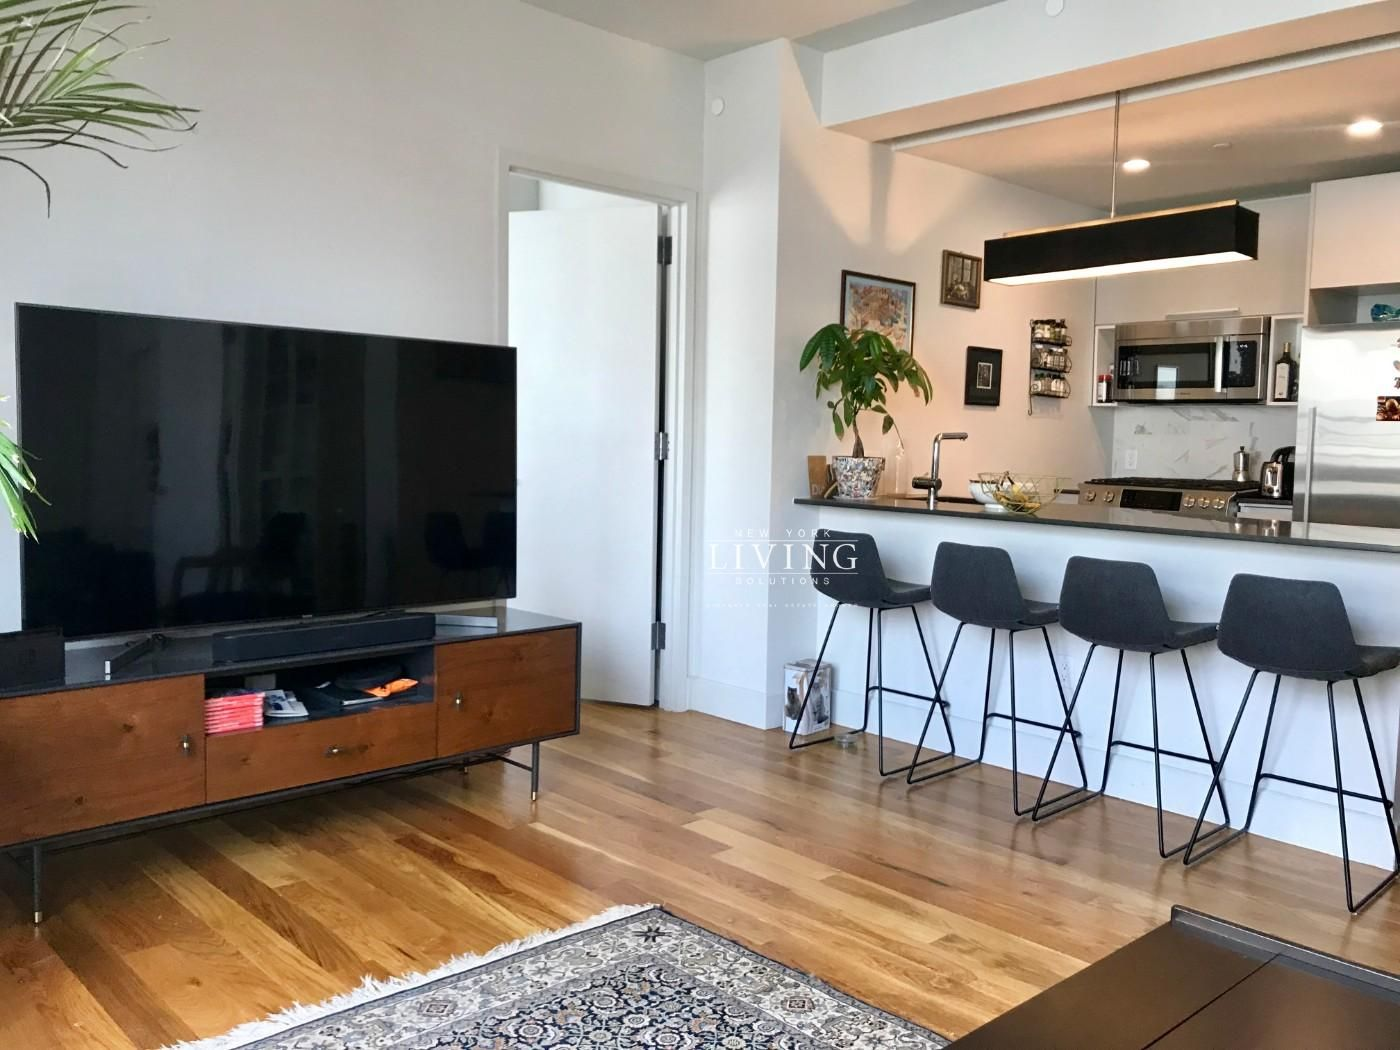 2 Bedrooms 1 Bathroom Apartment For Sale In Brooklyn Apartment Makeover White Wall Bedroom Two Bedroom Apartments